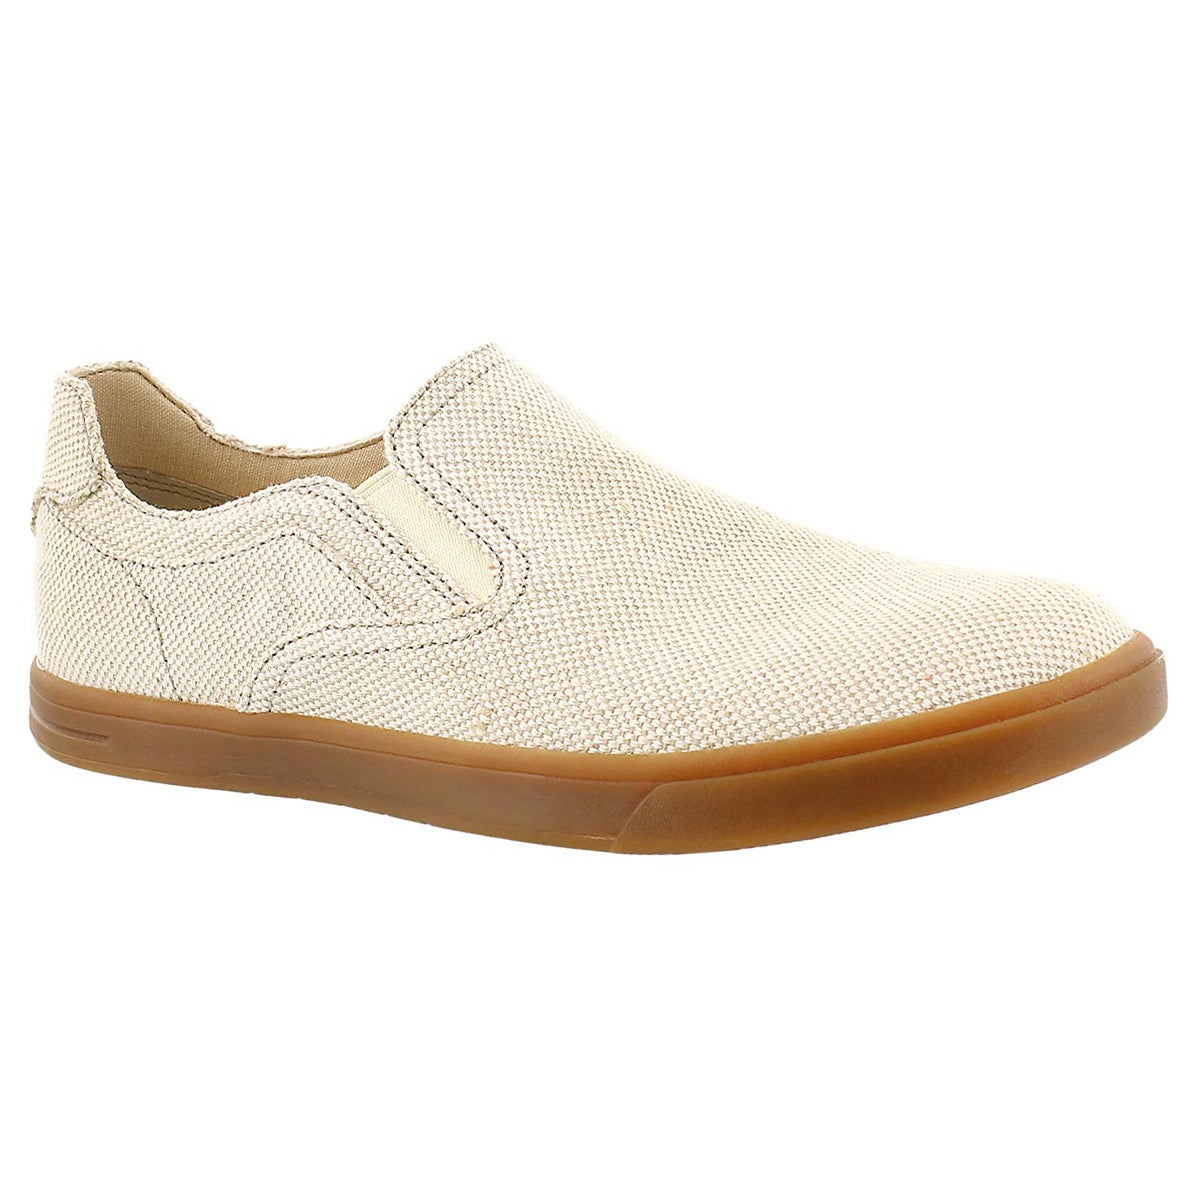 Mns Tobin Canvas sand slip on shoe